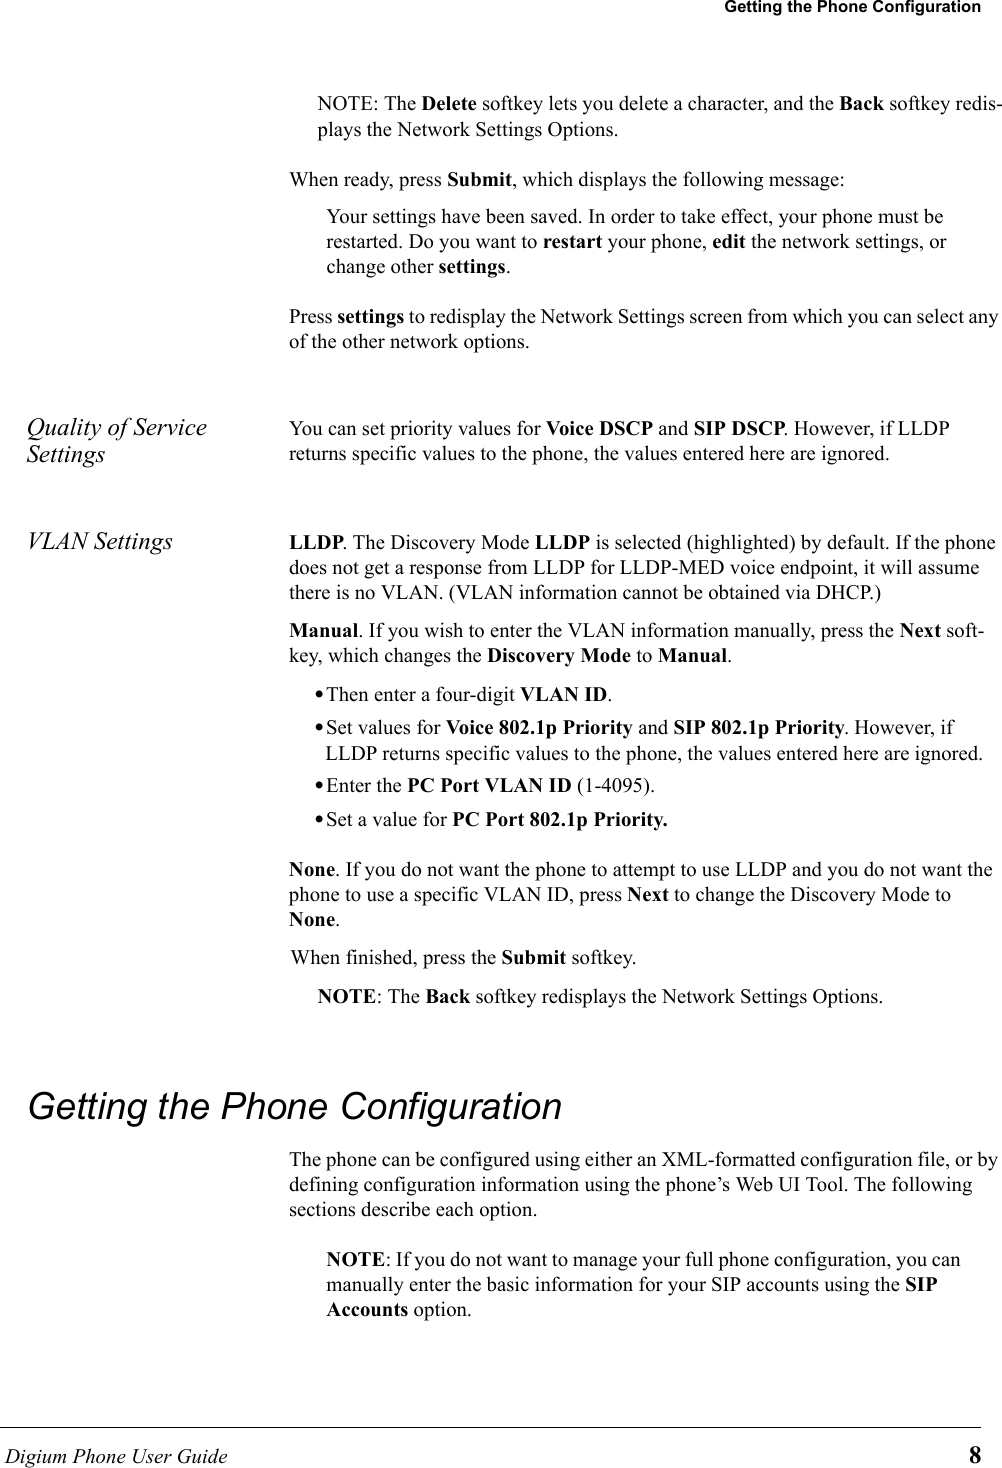 lgericsson ip phone documentation